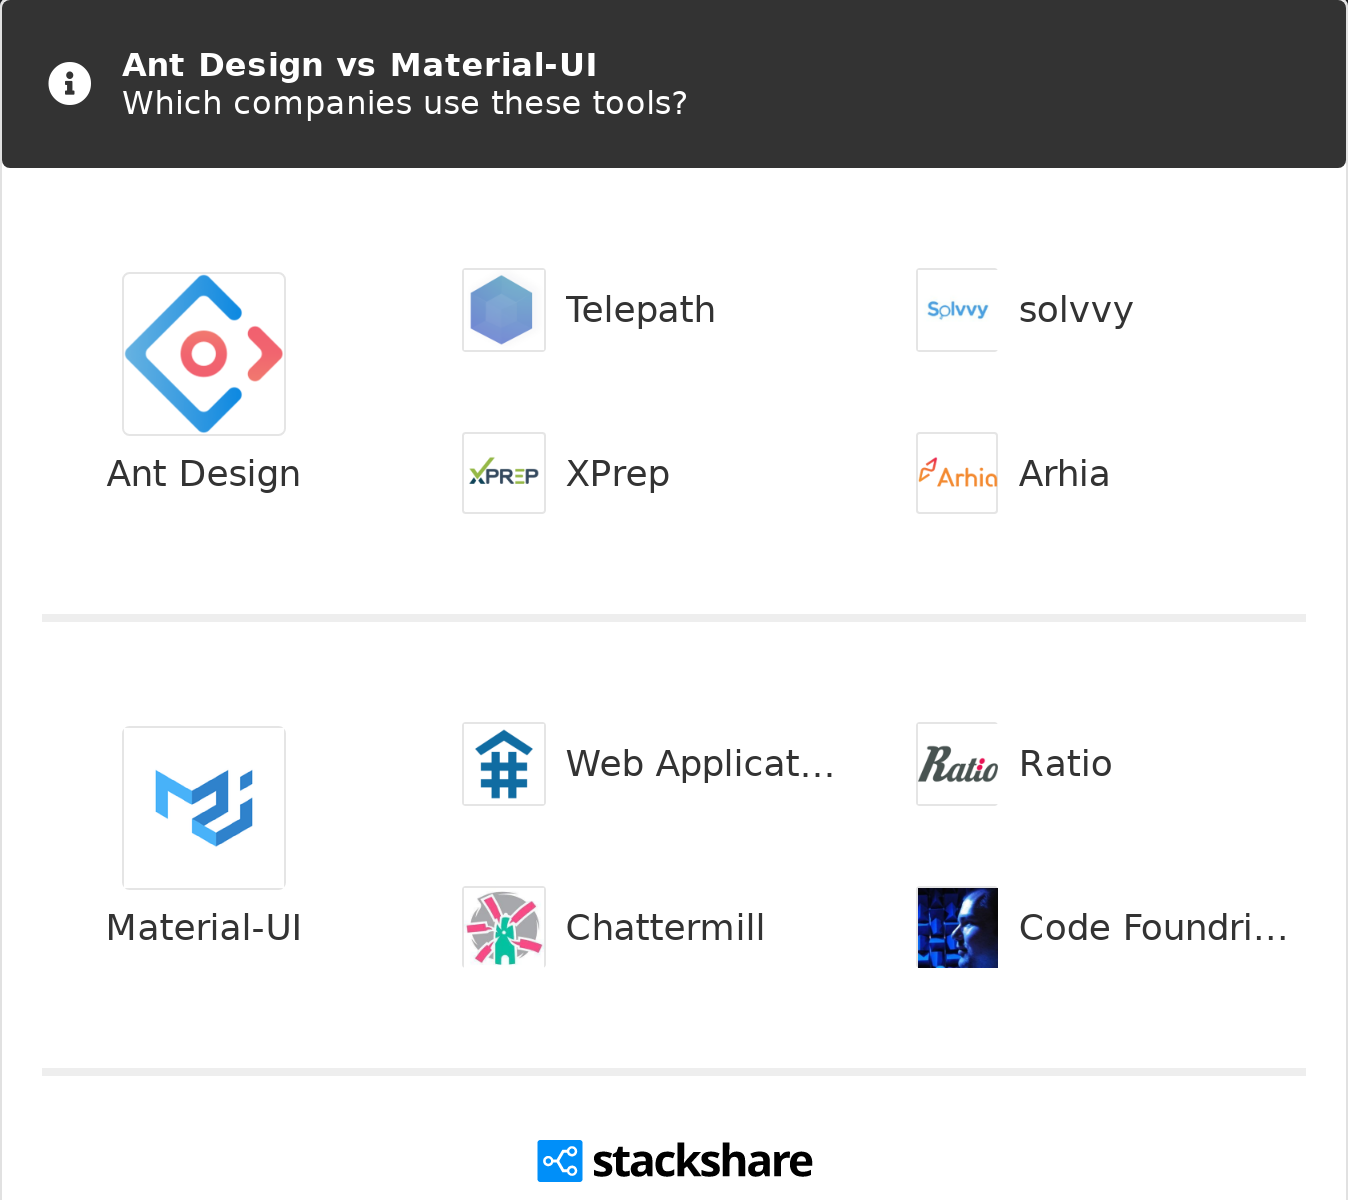 Ant Design vs Material-UI | What are the differences?